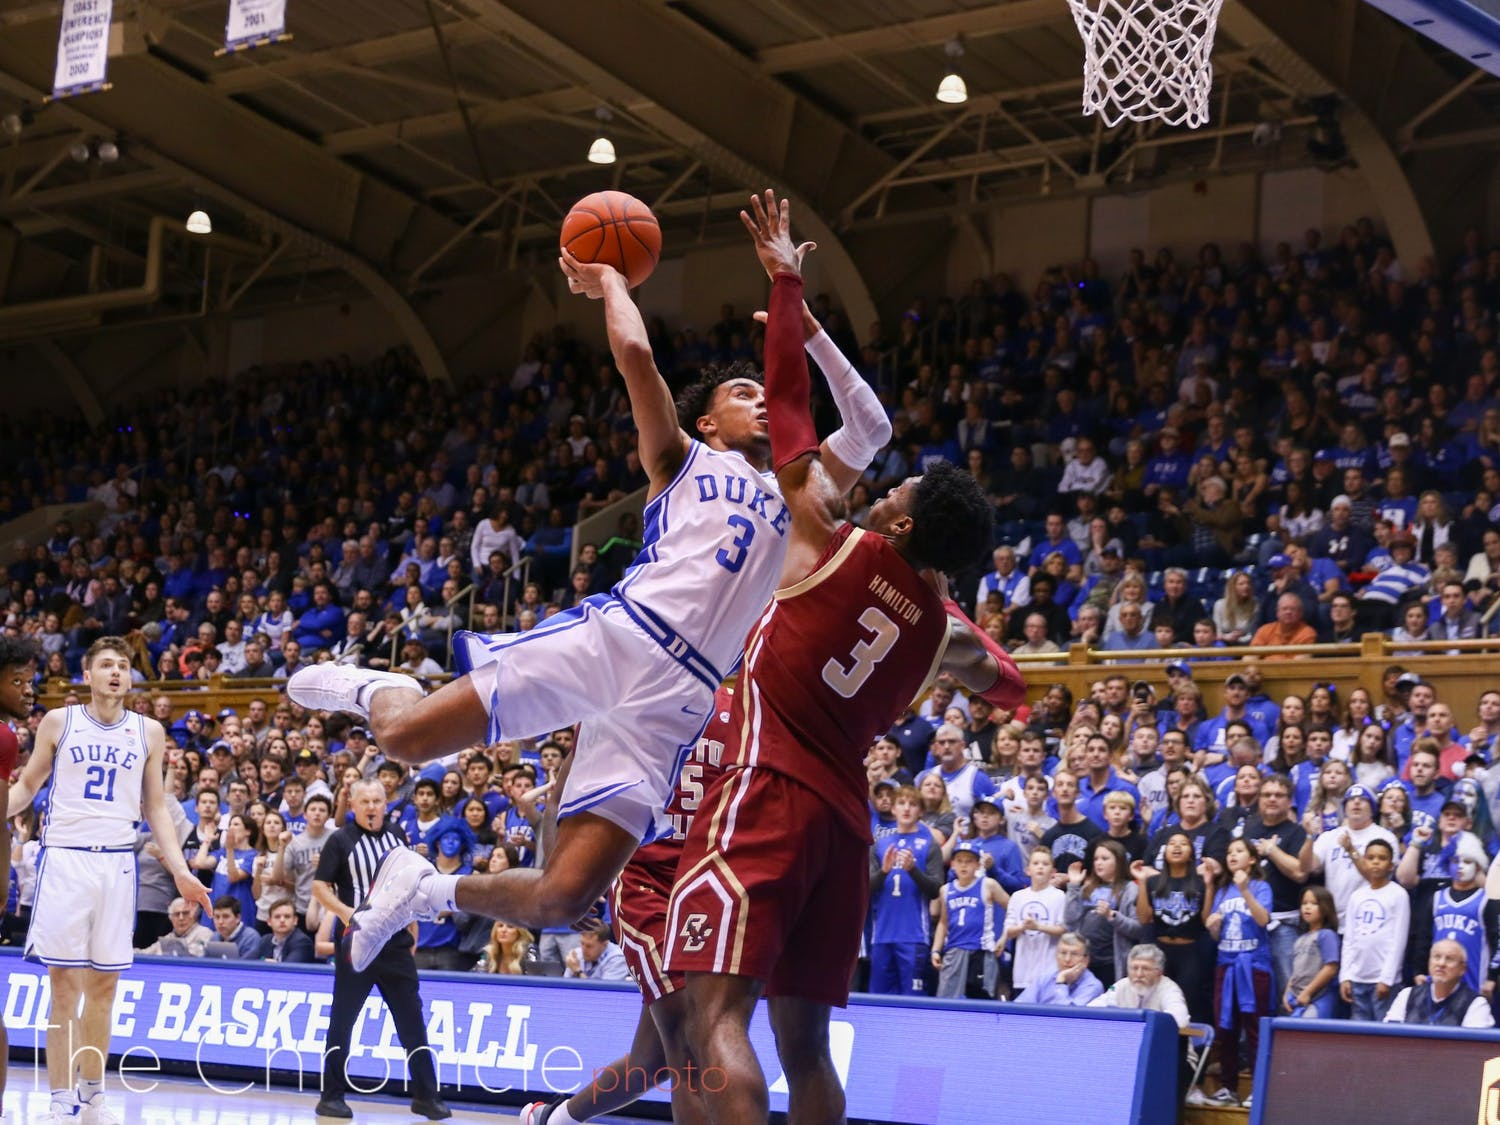 Tre Jones dished out 10 assists and gave up just one turnover against Boston College Tuesday.